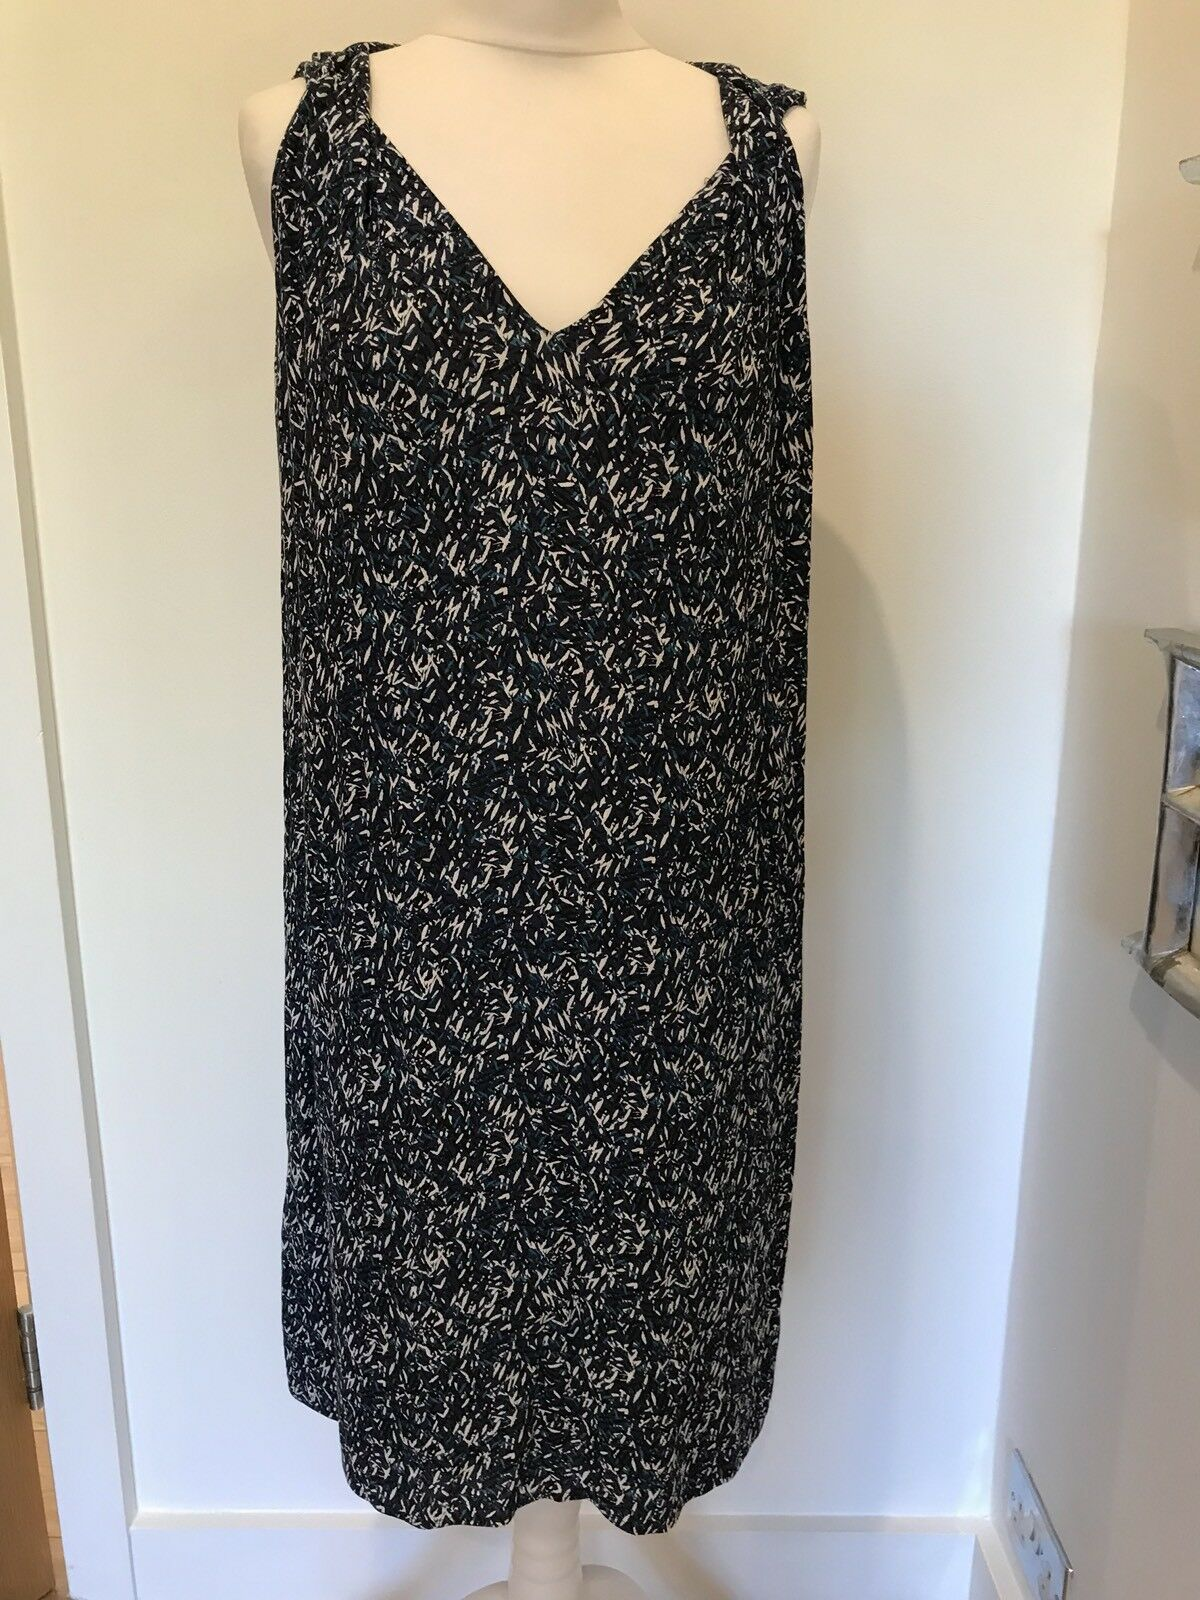 Gorgeous Comptoir Des Cotonniers bluee Print Sleeveless Dress Size XL Worn Twice